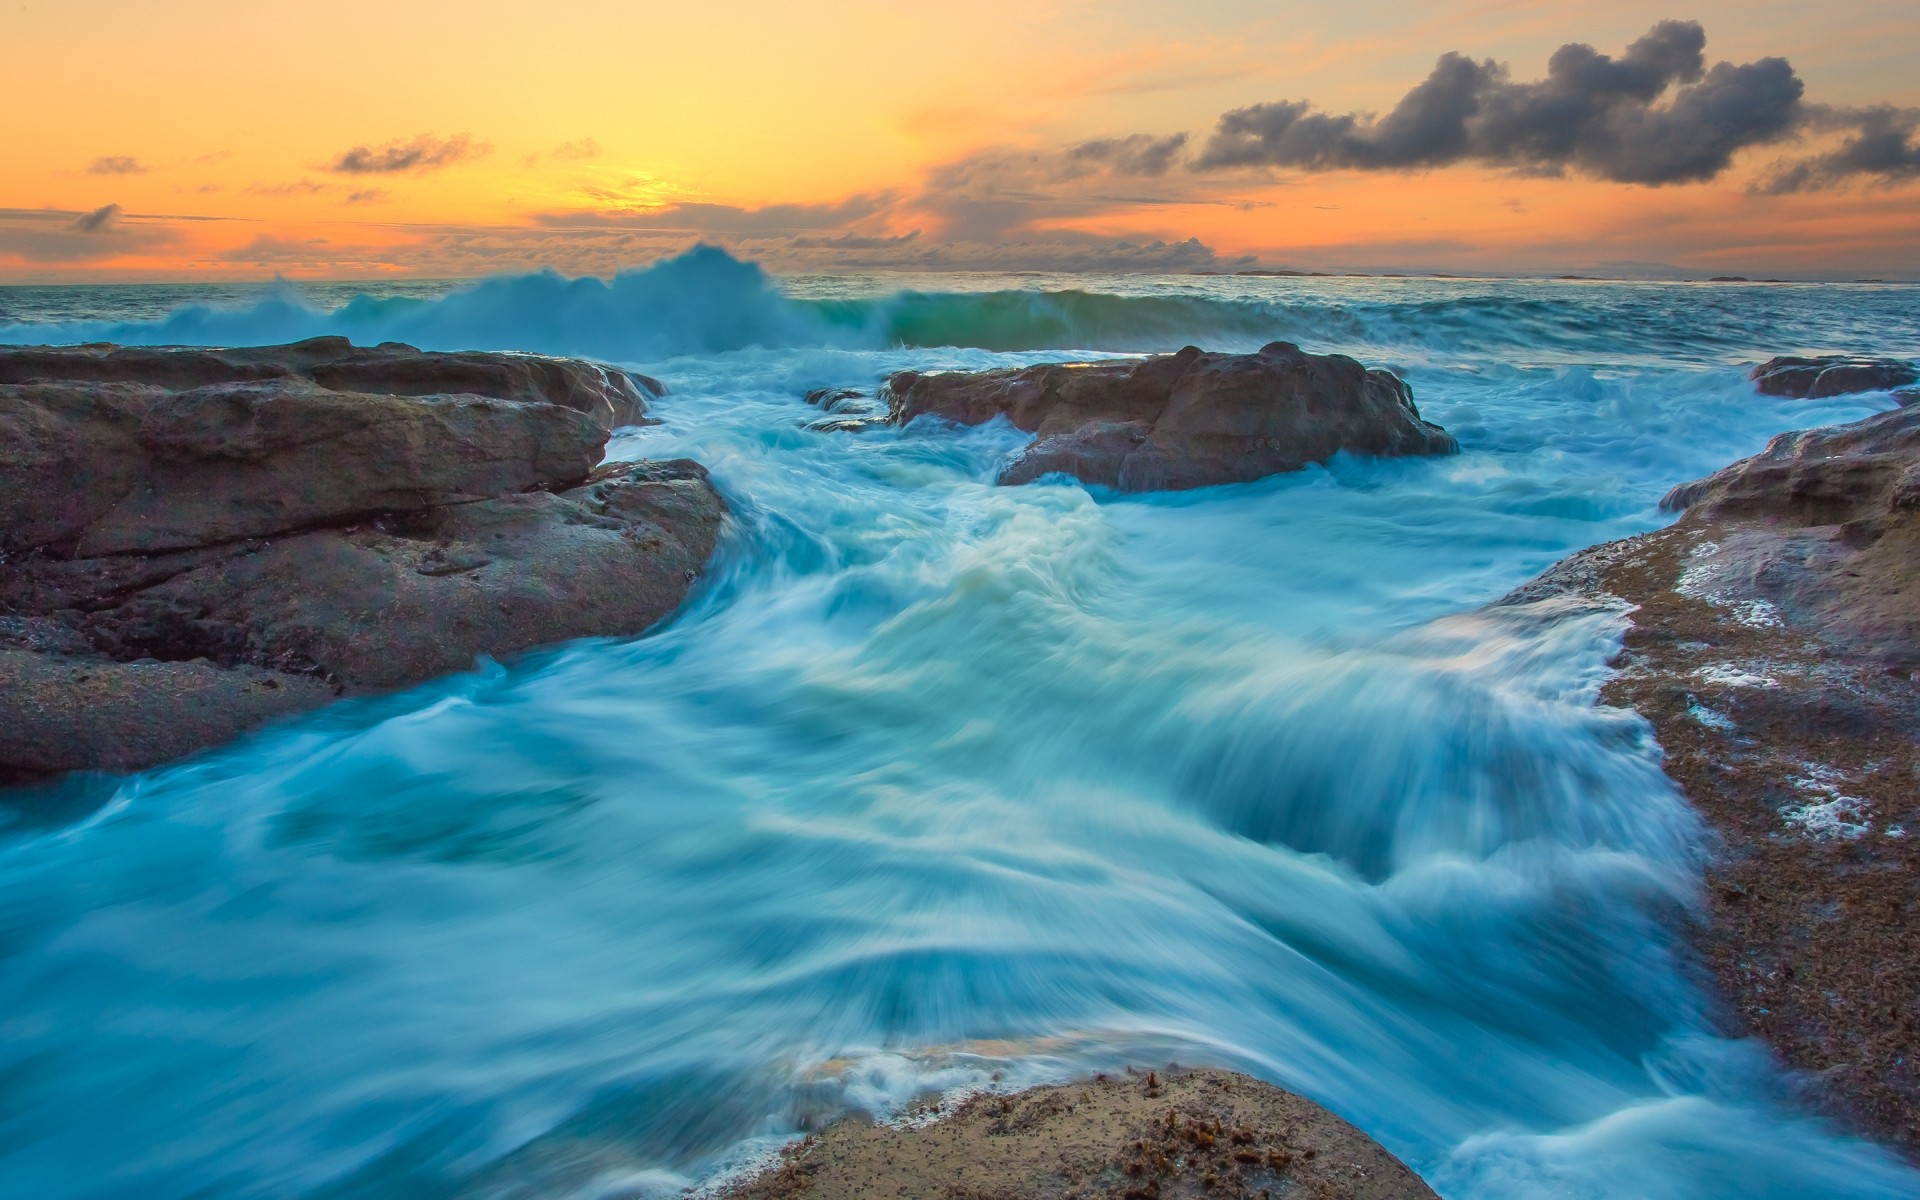 Turquoise Water Waves IPhone Wallpapers For Free